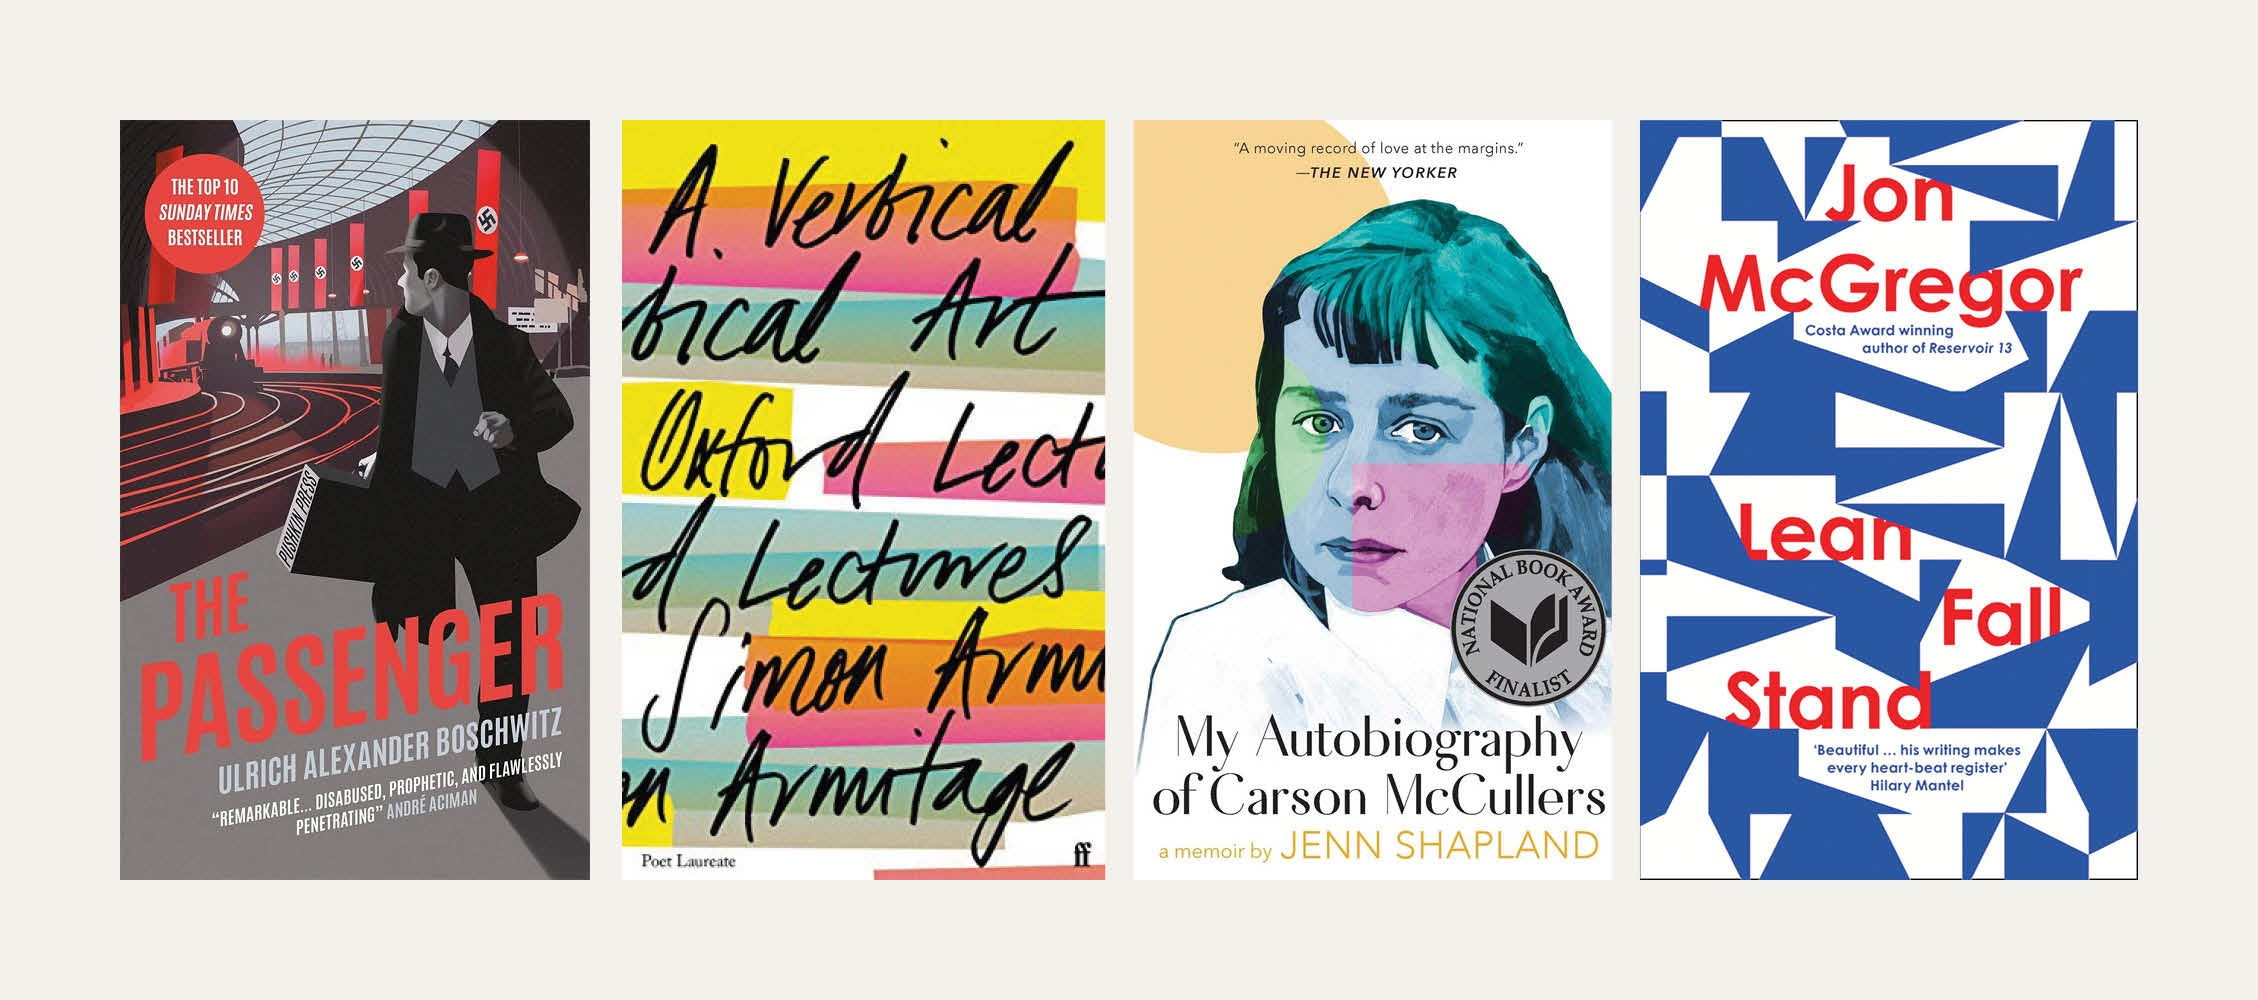 Reviewed in Short: New books by Jenn Shapland, Ulrich Alexander Boschwitz, Simon Armitage and Jon McGregor